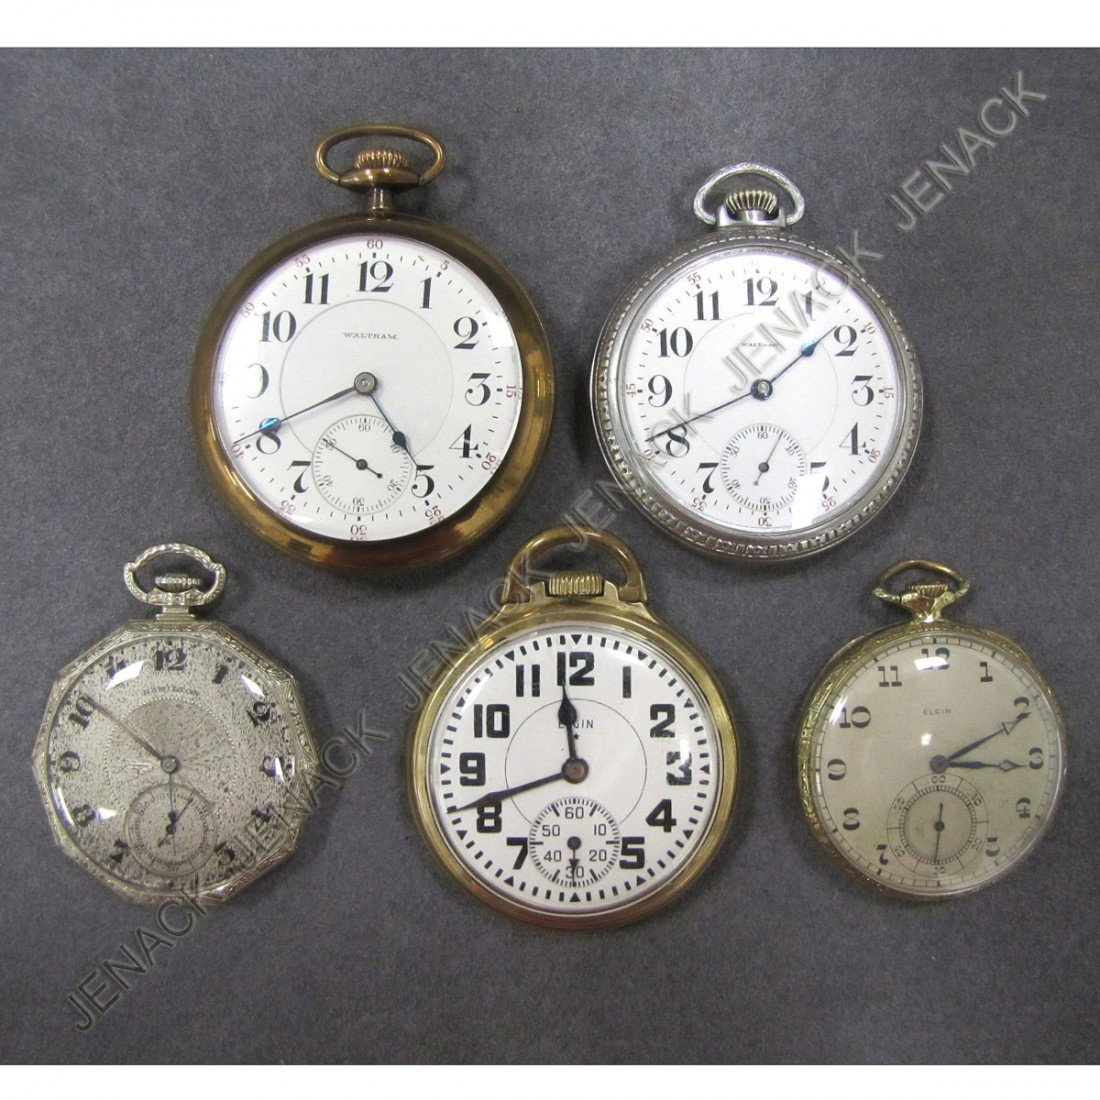 16: LOT (5) ASSORTED VINTAGE OPEN FACE POCKET WATCHES